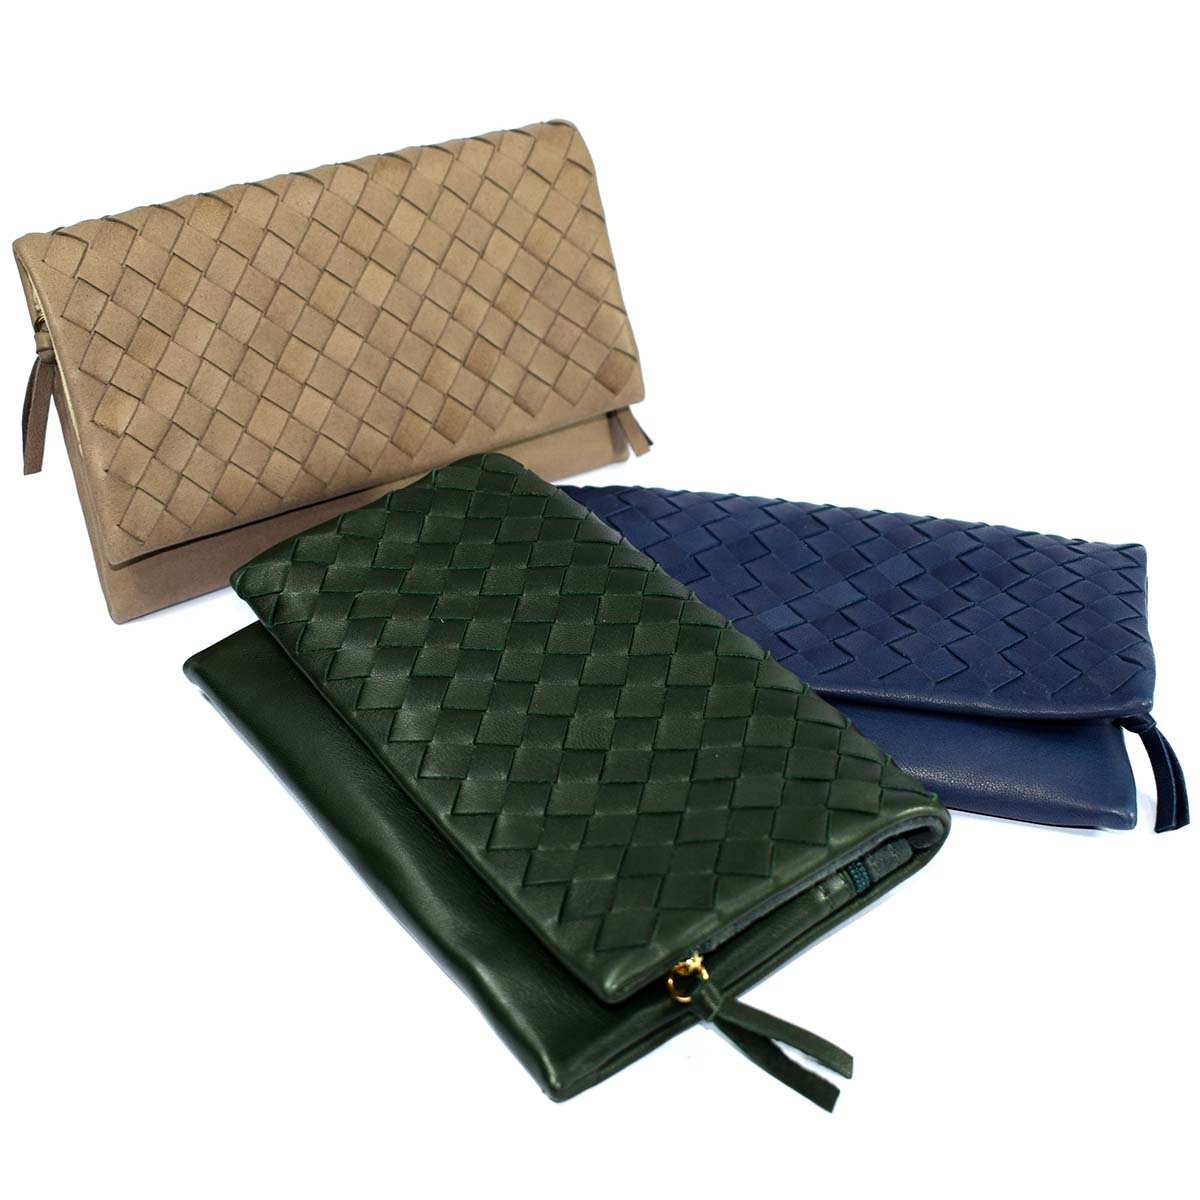 1719  CLUTCH SOFT with flap by Bottega Fiorentina